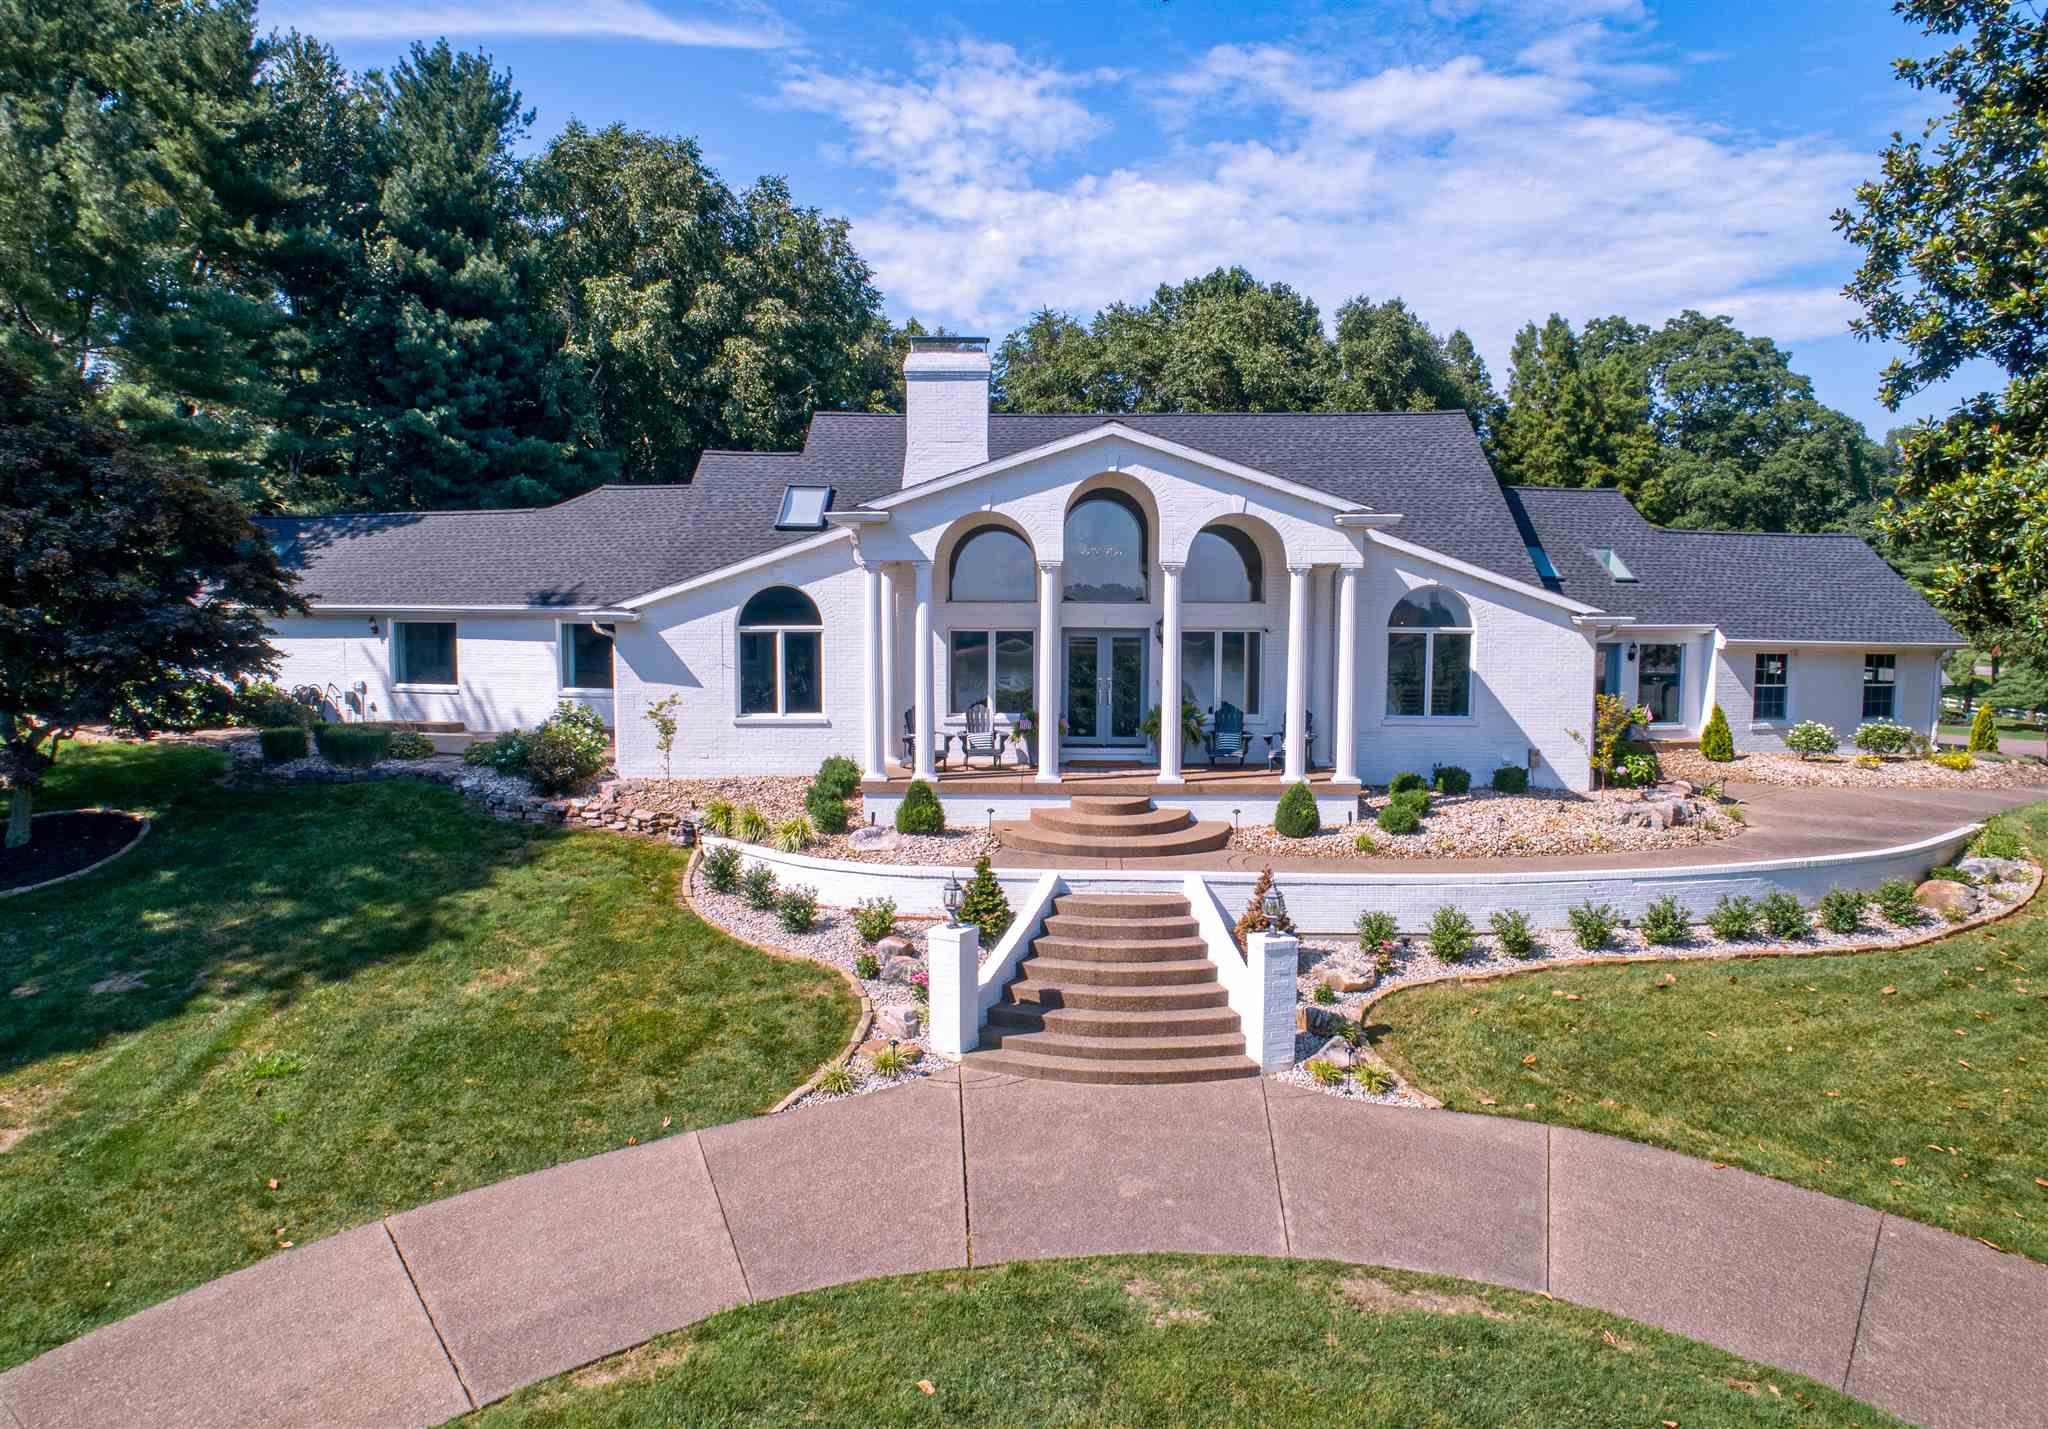 Words alone will not begin to describe this riverfront property. Located along the Ohio River and the French Island Trail, this is truly a grand estate. Situated high on a hill which allows for an unobstructed view of the barges floating down the river while enjoying sunsets and sunrises from the front porch. The long driveway circles around in front of the home leading to the magnificent 2 story entry. The main floor offers a dining room, office, sitting area, huge great room, kitchen, breakfast nook, powder room, multi-purpose room, attached garage and brand new redesigned master suite. Upstairs you will find 3 bedrooms, 2 full baths and a loft area. The finished basement offers a rec room, large laundry with walk-in closet and storm shelter. This almost 3 acre property with a beautiful pool also has a 2 story pool house. The main floor has a large gathering room with a laundry area and full bath. The upper level has an efficiency apartment with kitchen, full bath and sleeping area. The pool house offers a space currently used for a home gym along with a garage to accommodate 2+ Vehicles.  A new play set and utility shed are also found on the grounds. Full list of updates and features can be acquired upon request.